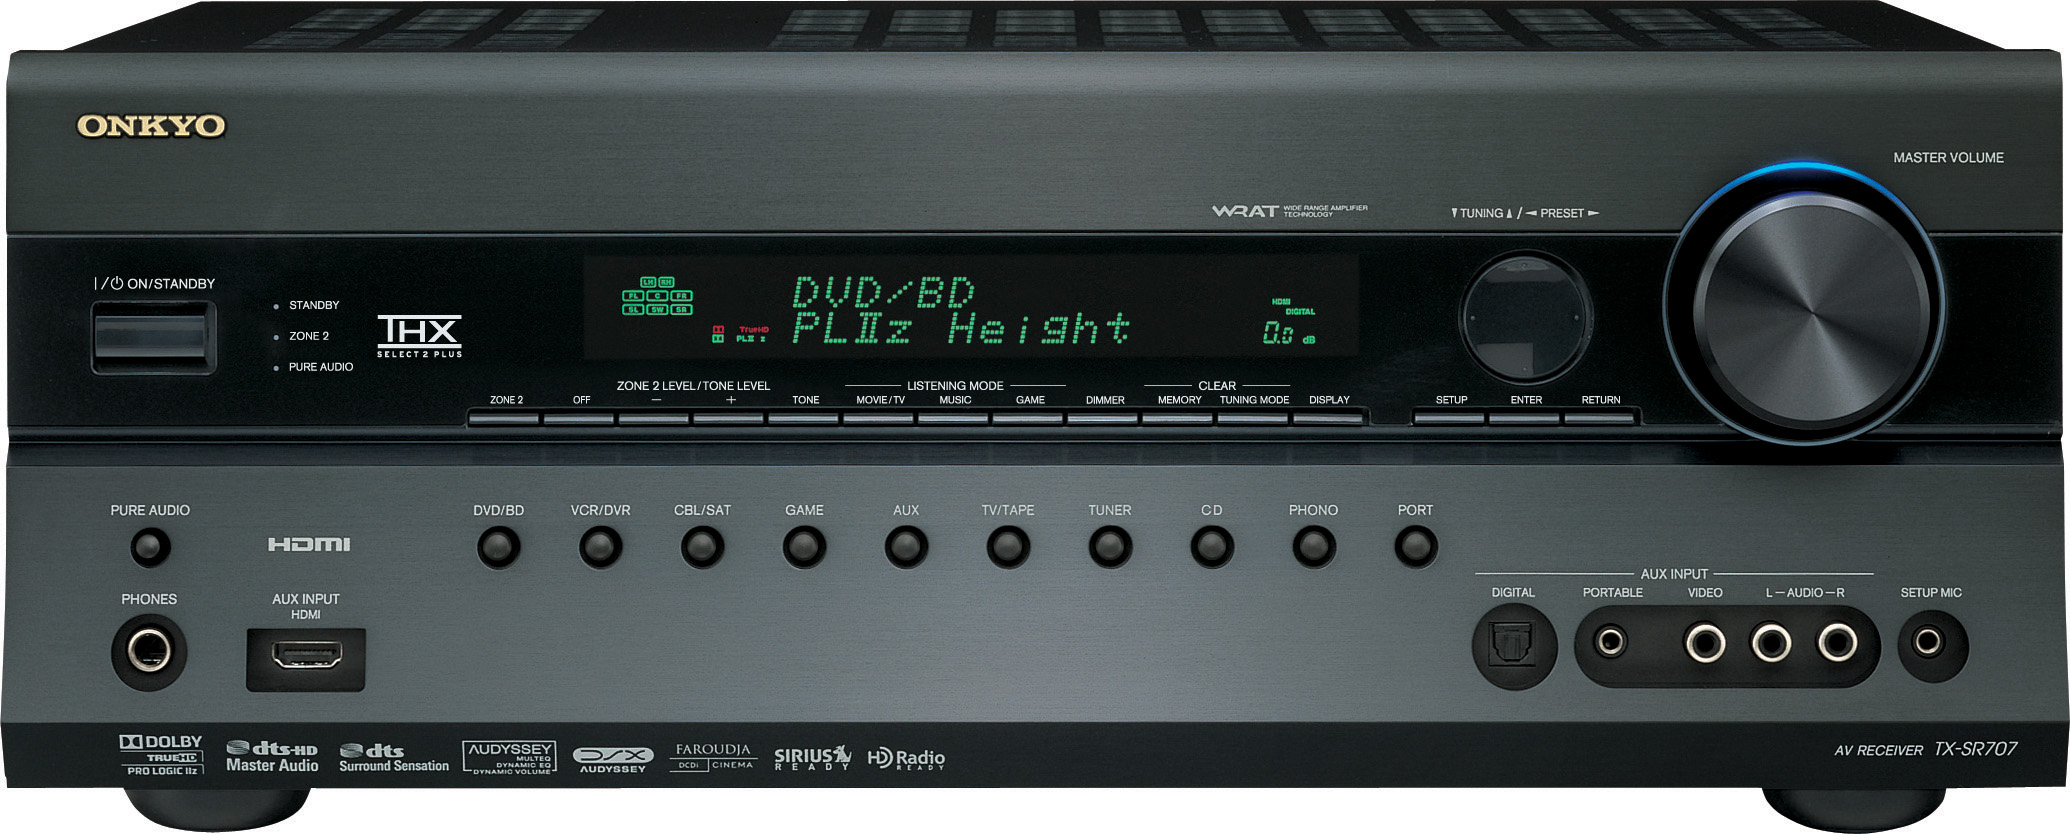 Onkyo Receiver No Sound Through Hdmi